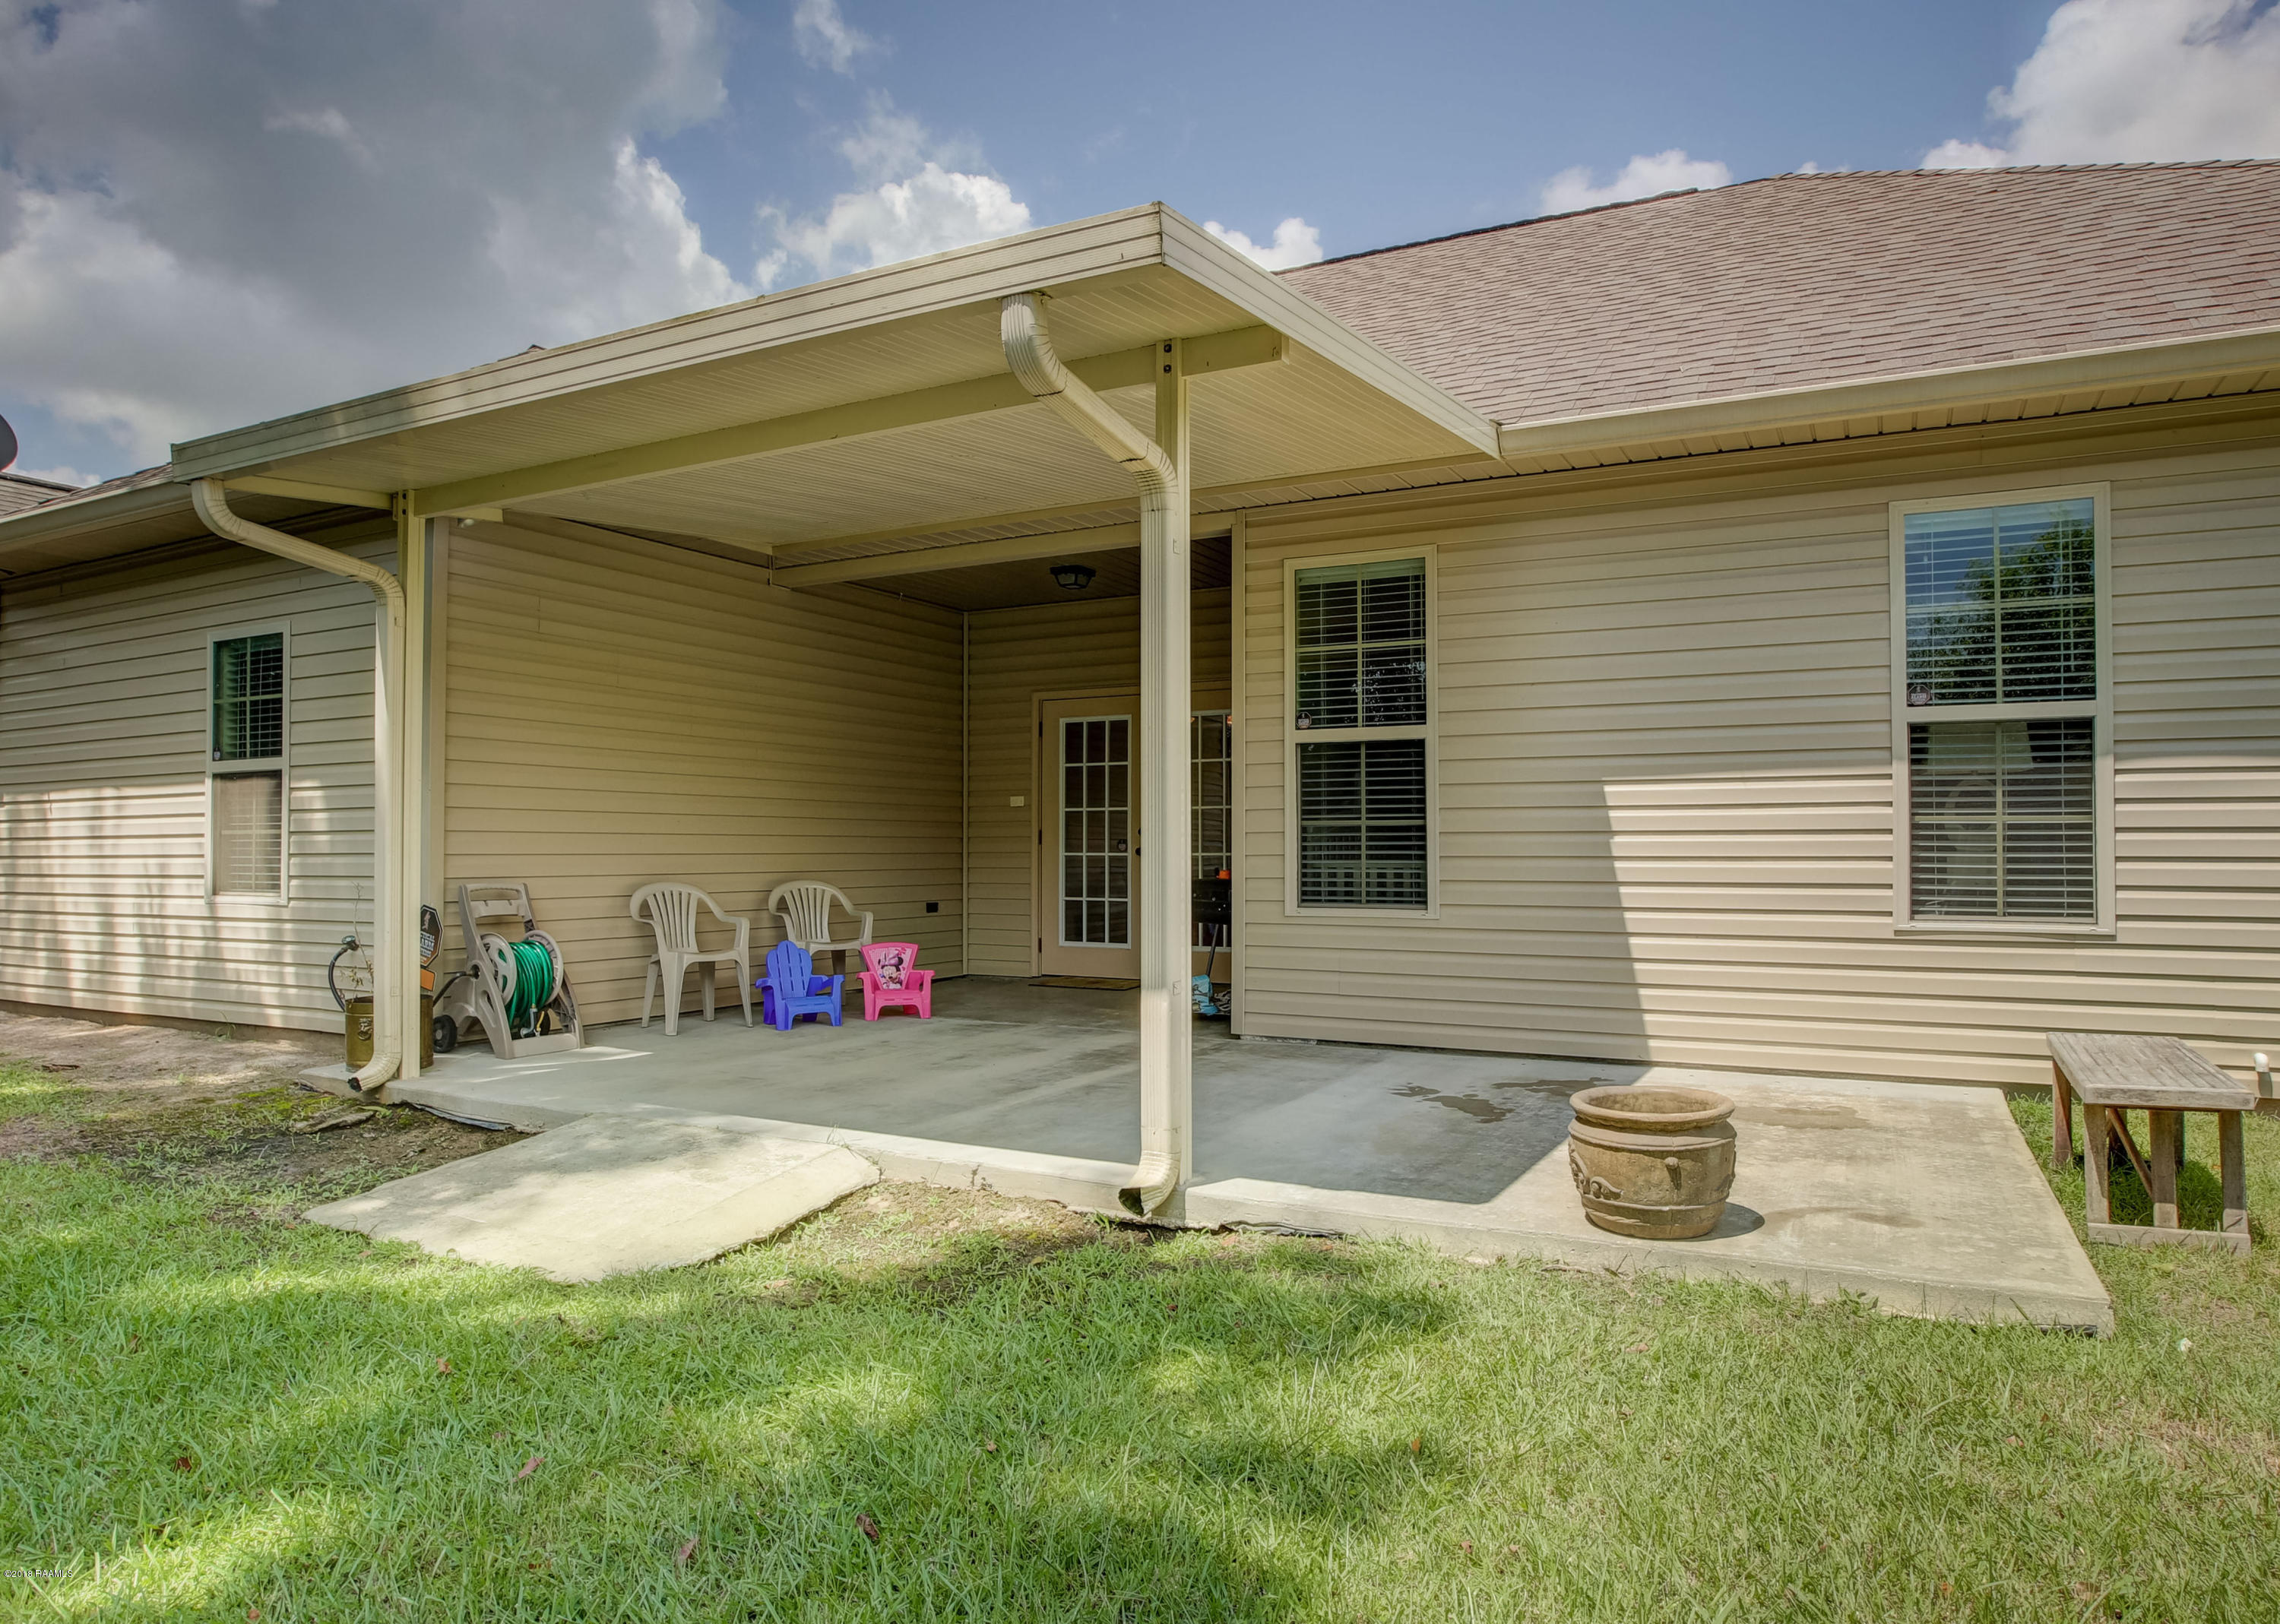 906 Pelican Ridge Cove, Carencro, LA 70520 Photo #24